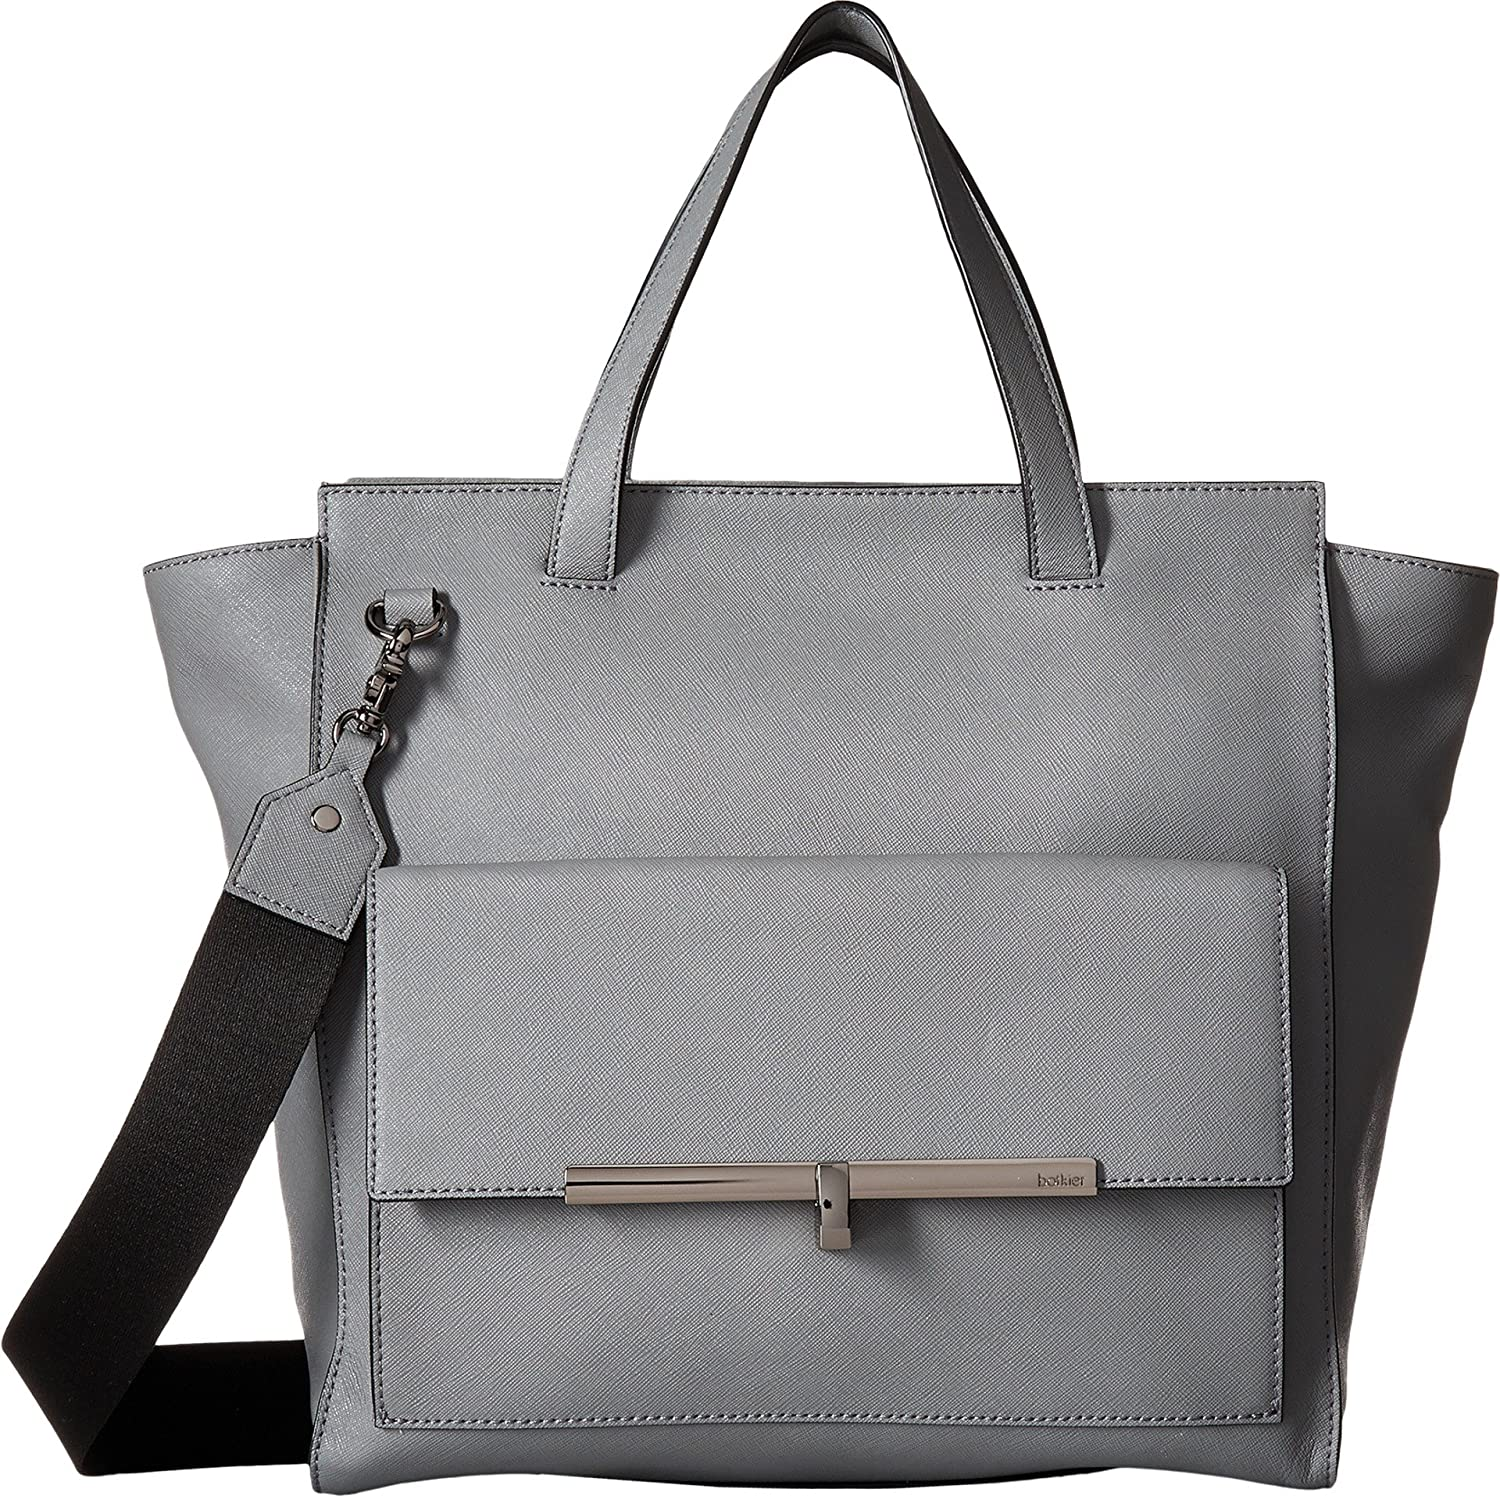 08c261b68f33 Botkier womens jagger tote slate one size shoes jpg 1500x1496 Botkier tote